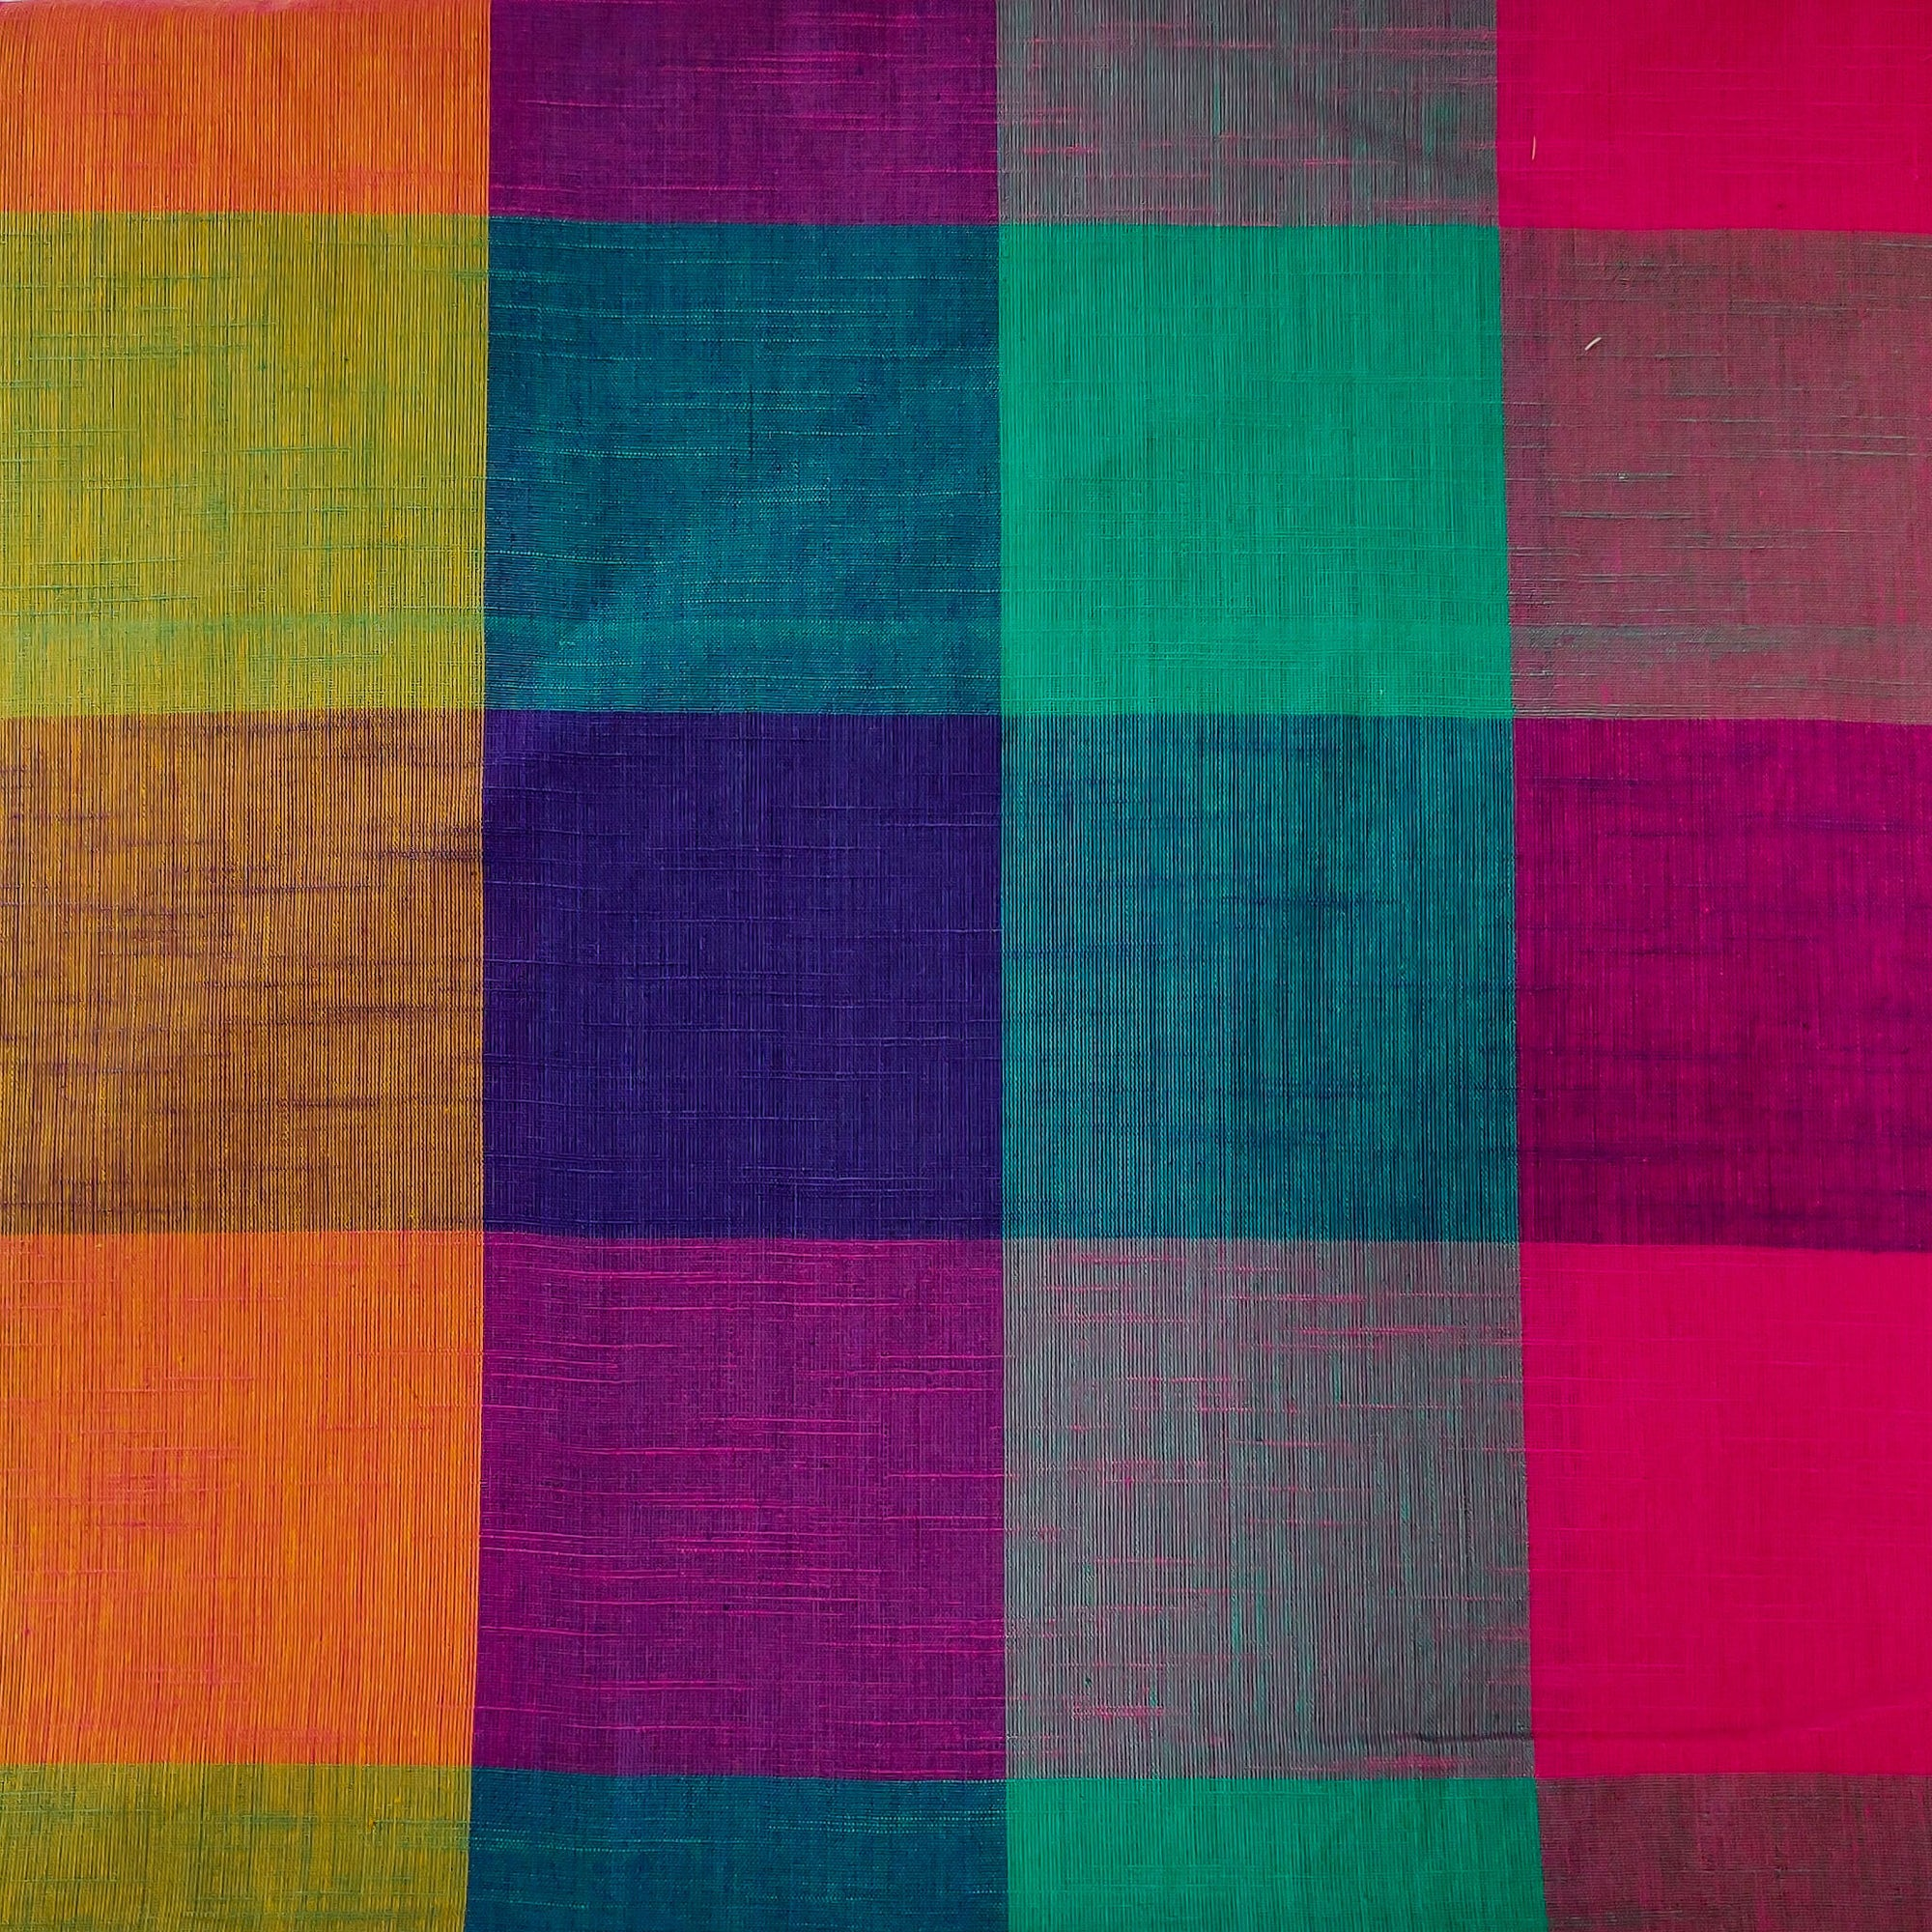 Pure Cotton Handloom Checks With Shades Of Blue And Pink Fabric